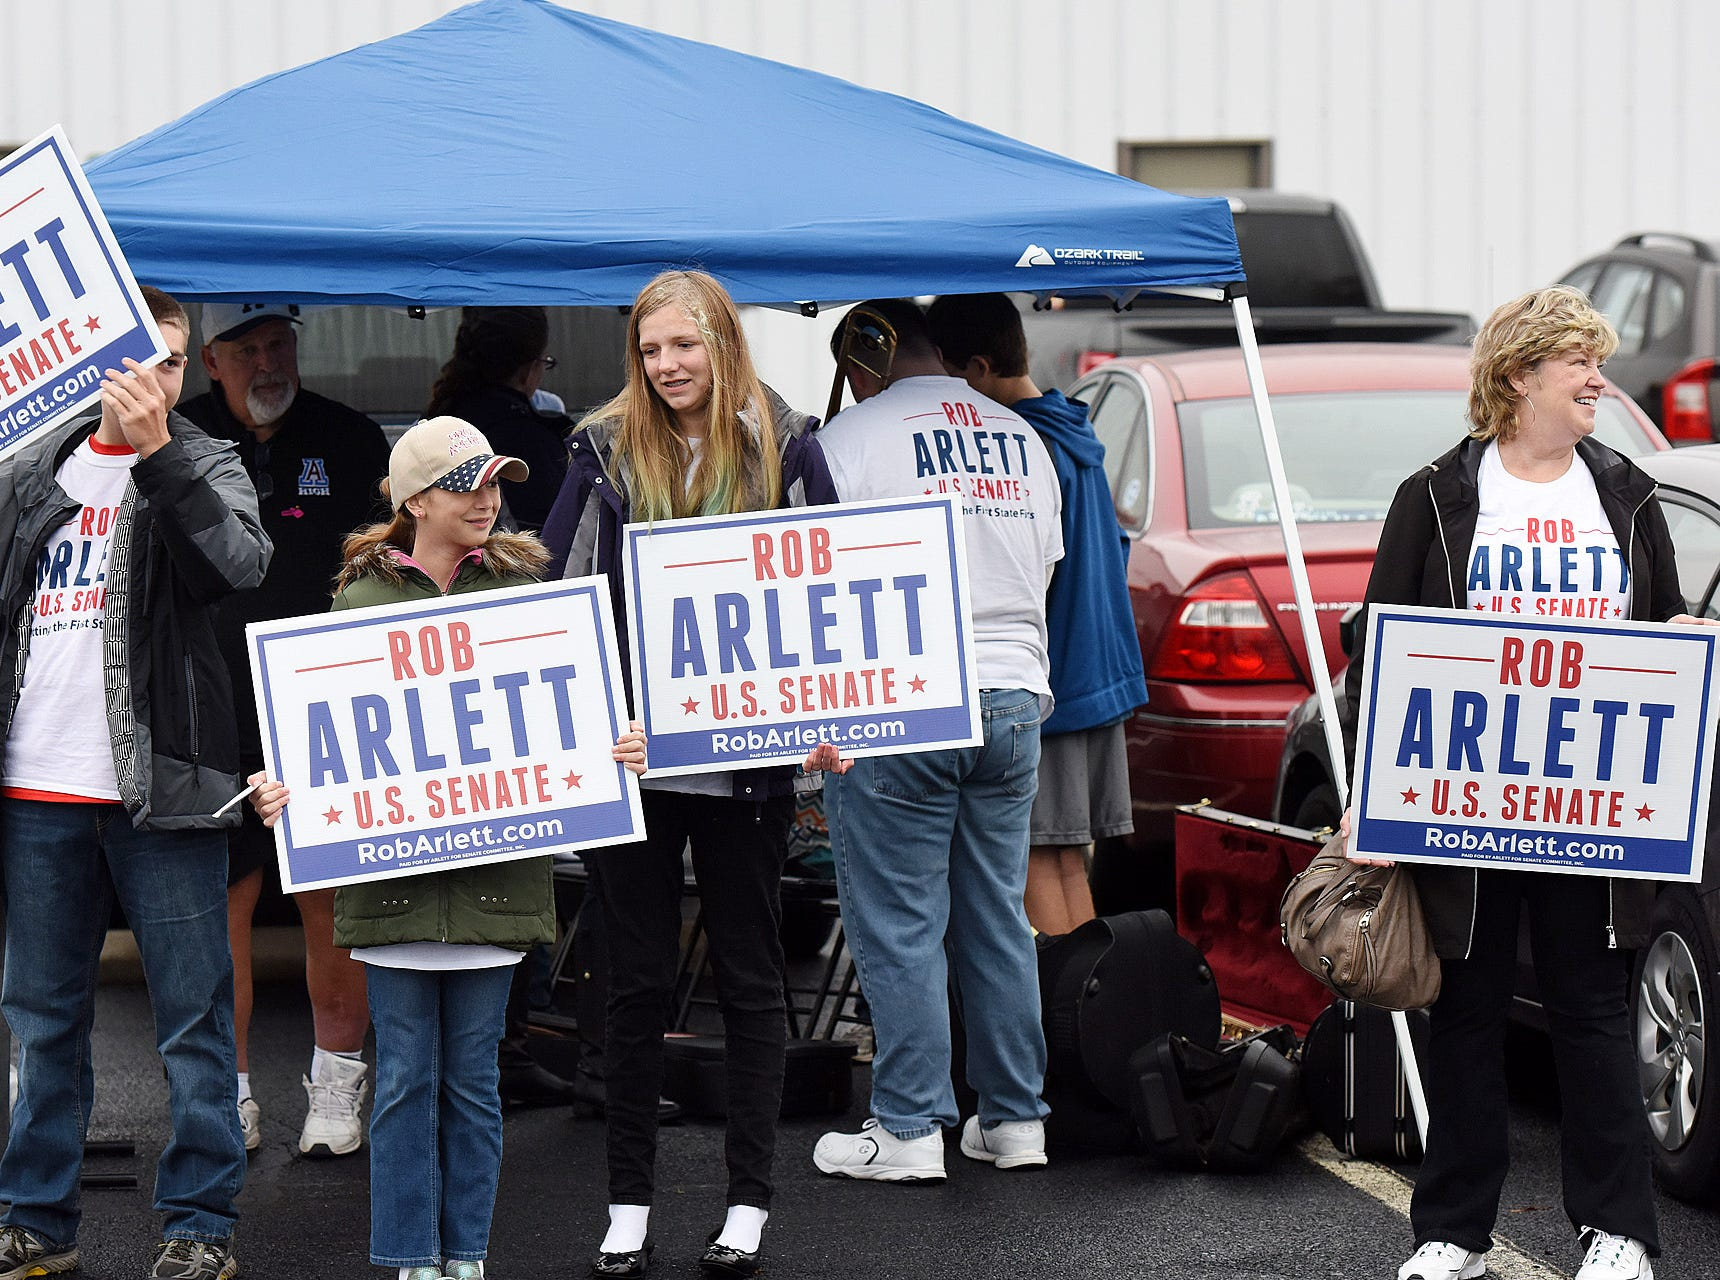 U.S Senate Candidate Rob Arlett supporters at the Roxana Fire Station on Election Day. Voter turnout in eastern Sussex County has been steady at polling places in Rehoboth, Roxana and Angola.